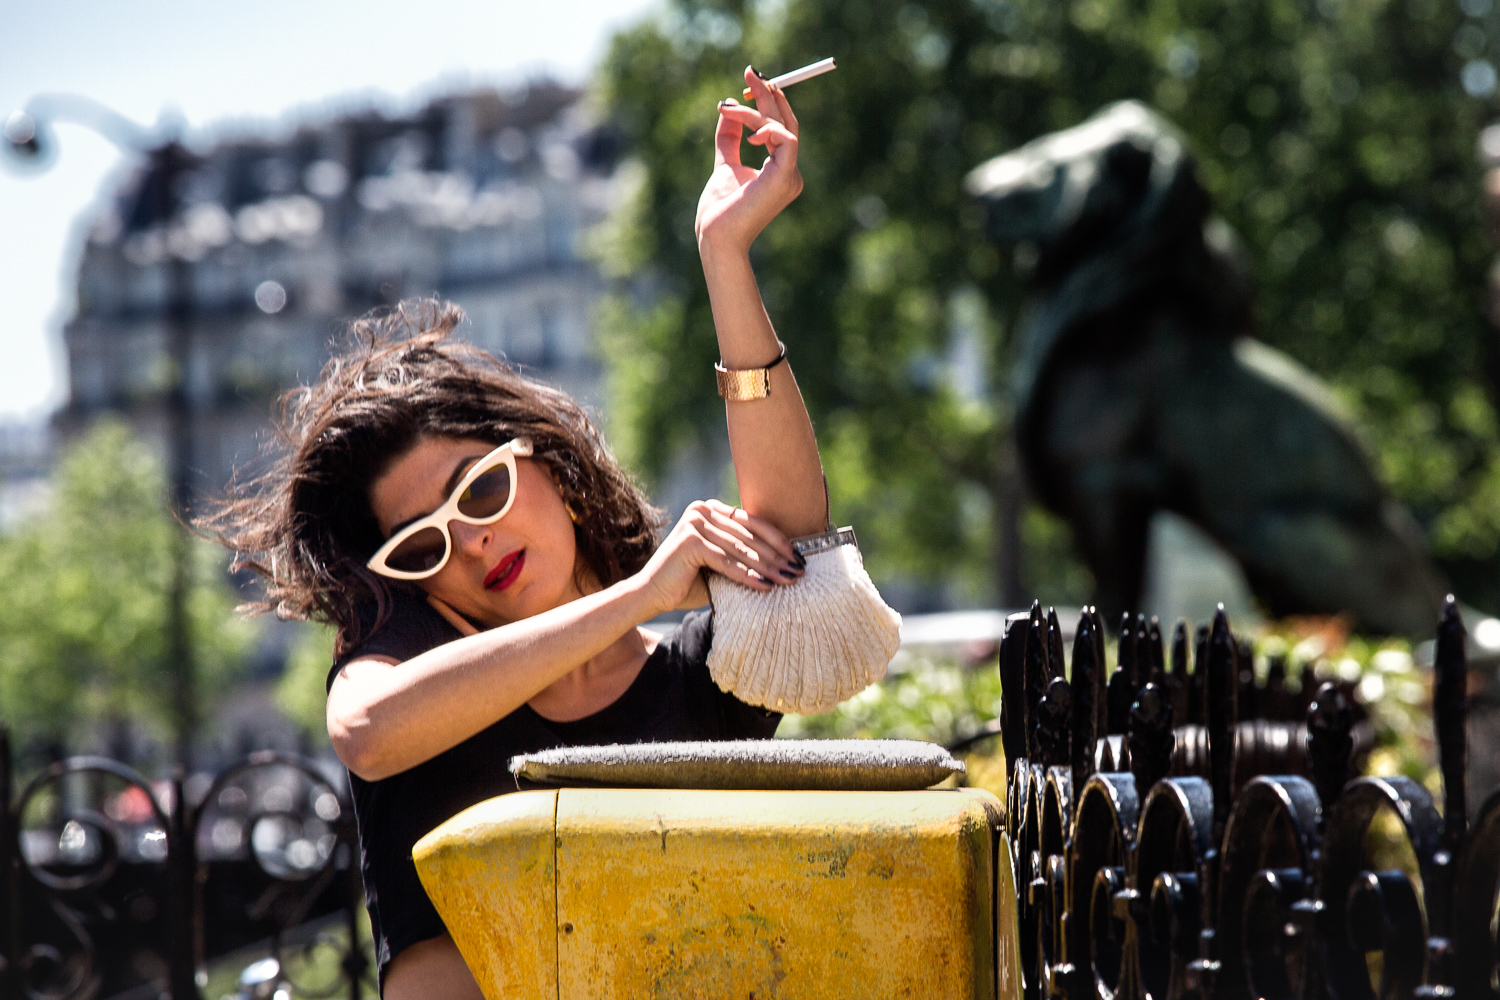 Woman-Cigarette-Handbag-Phone-Sunglasses-Statue.jpg